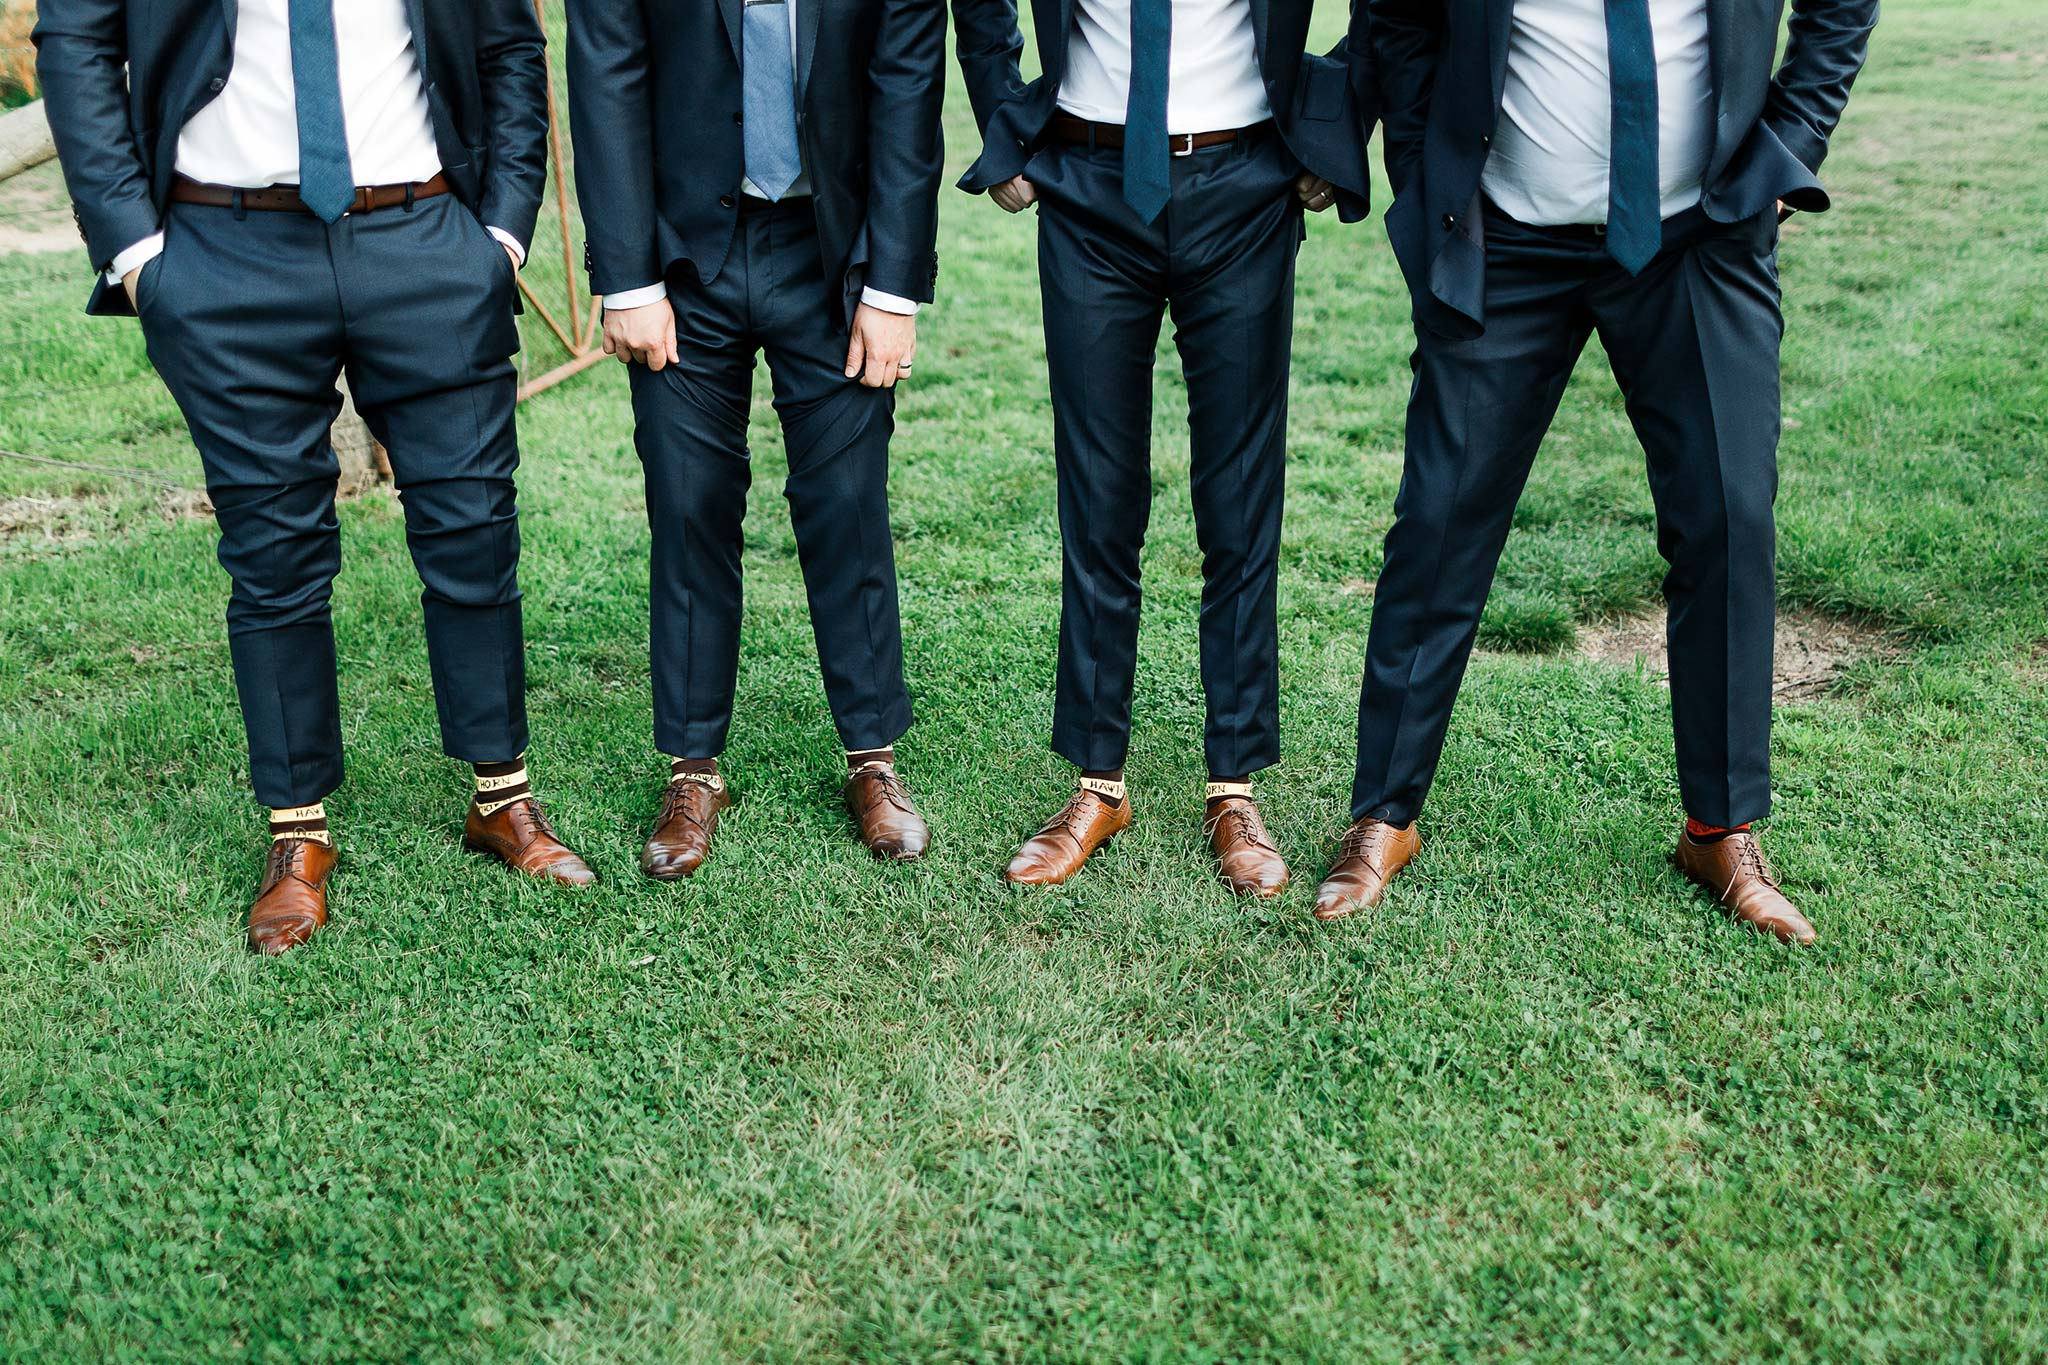 Tasmania-Davenport-Farm-Wedding-groomsmen-socks